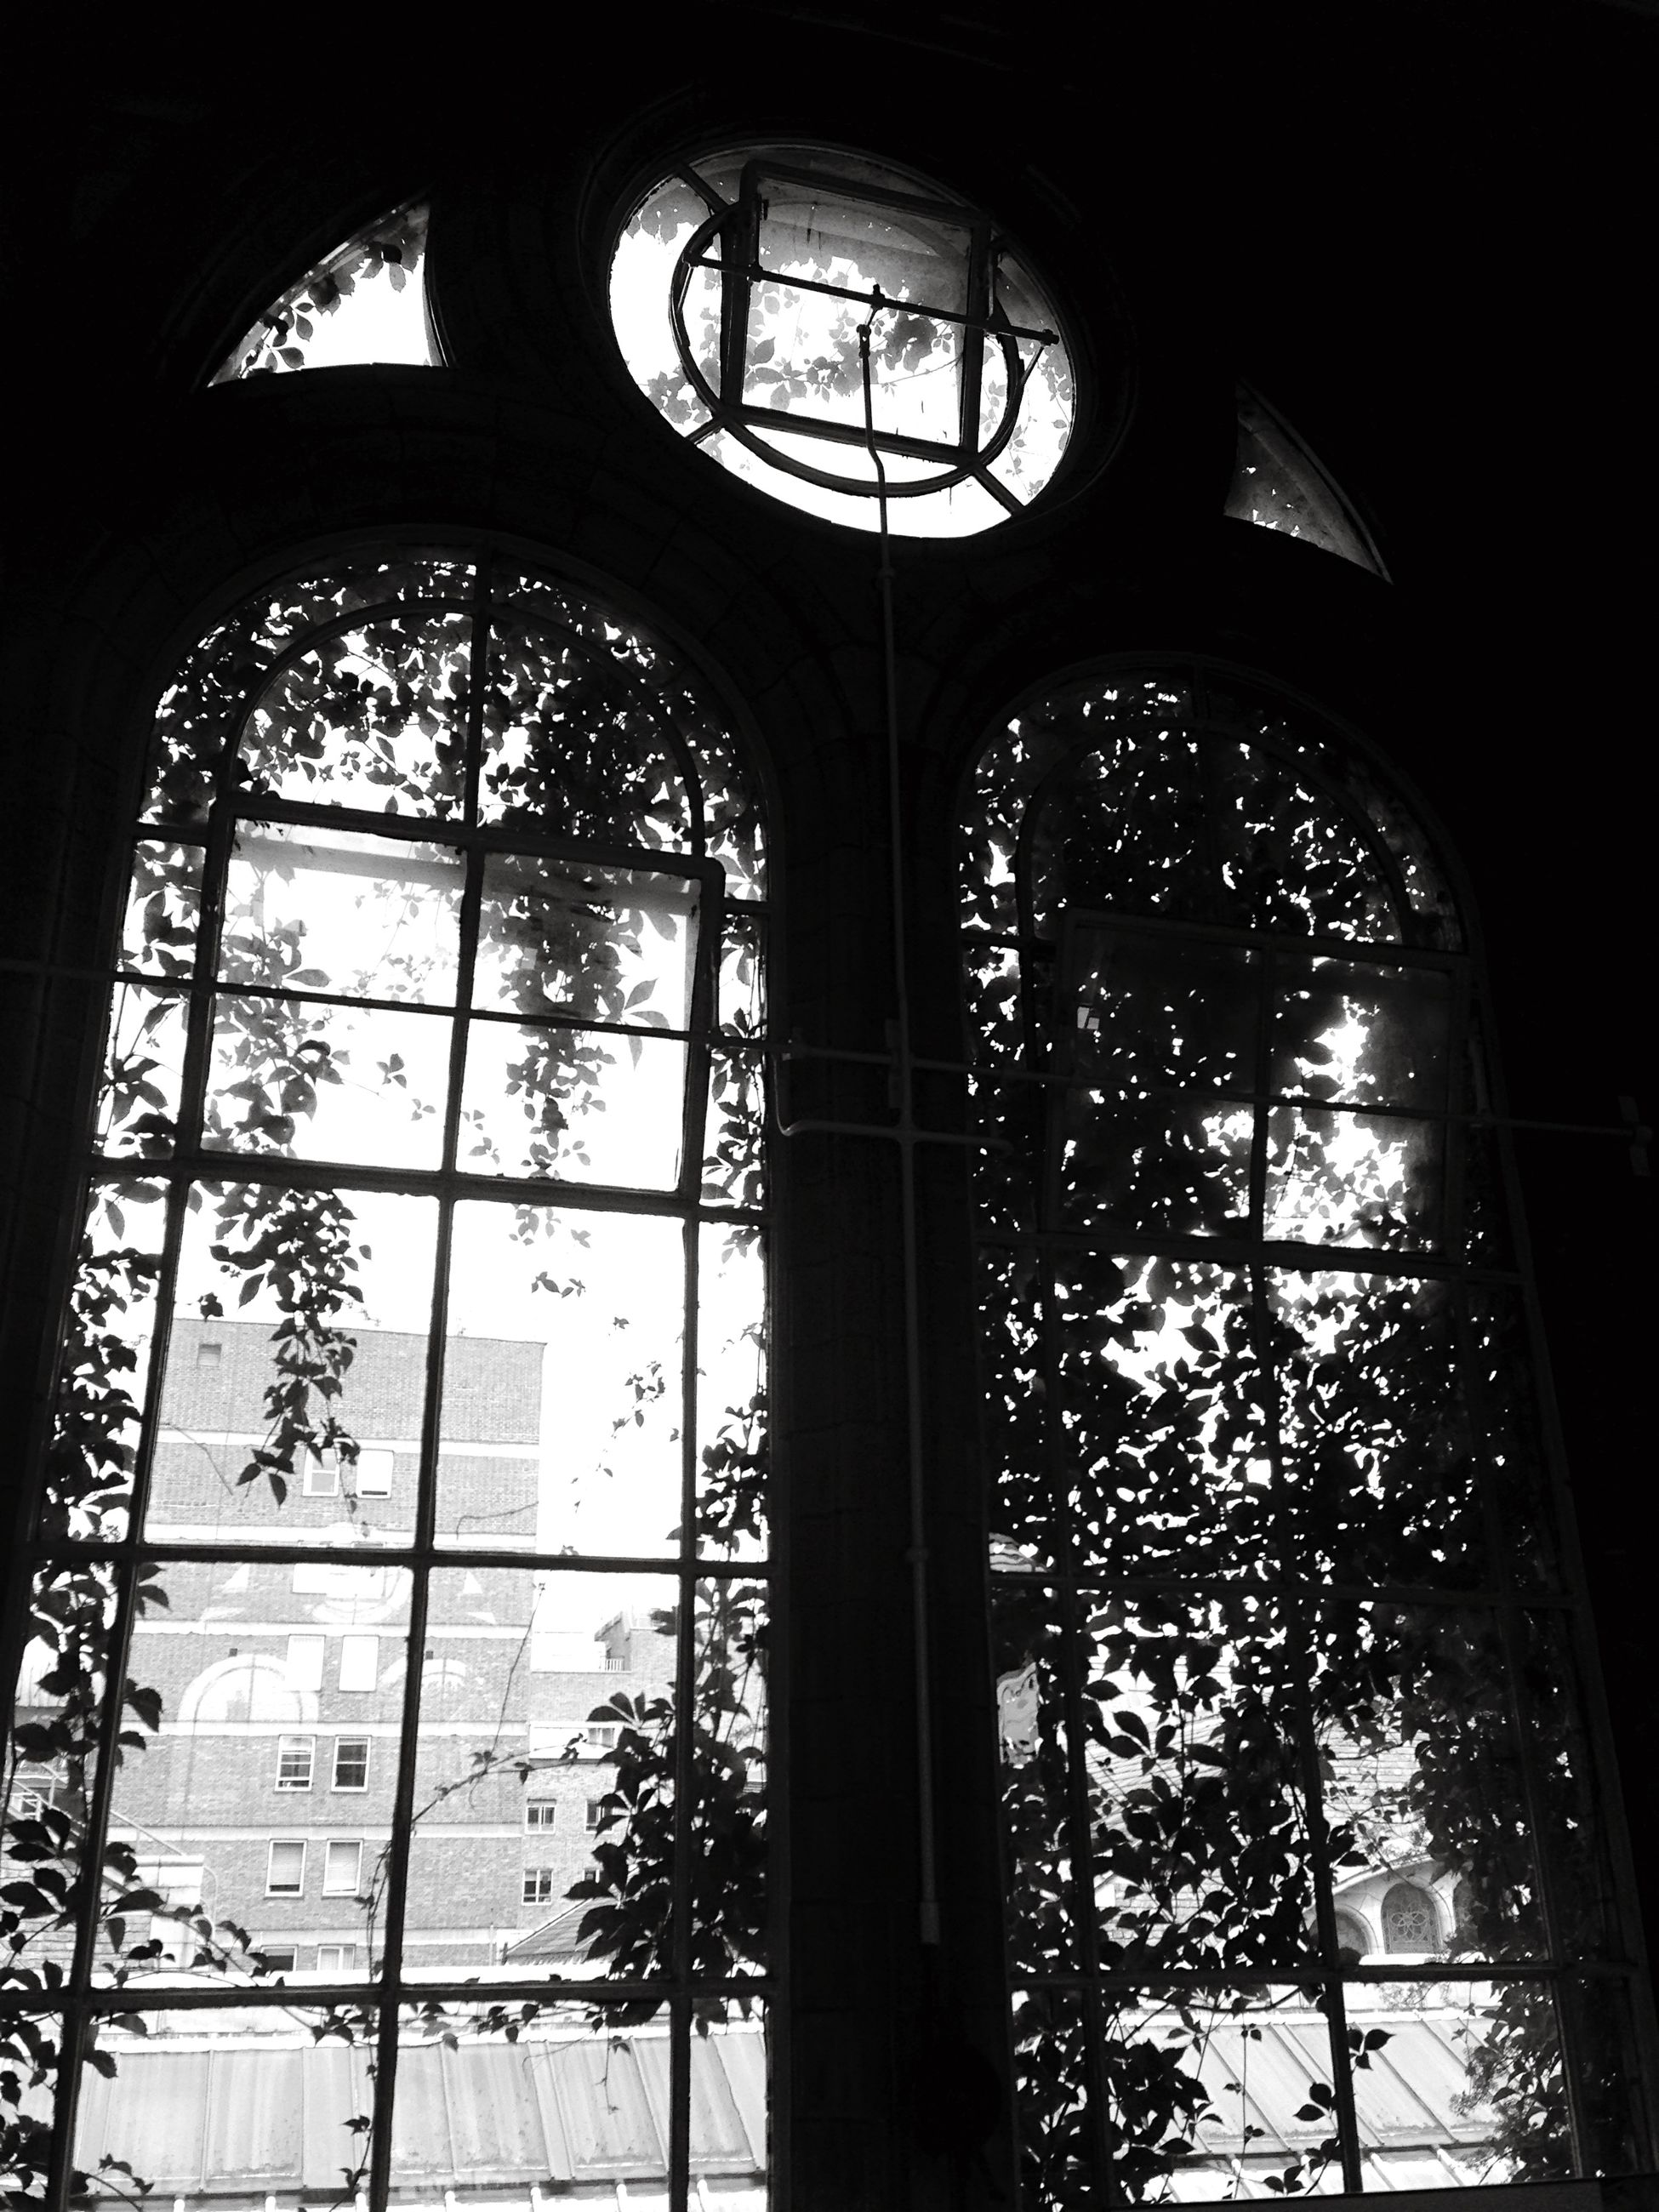 indoors, window, architecture, glass - material, built structure, arch, transparent, low angle view, ceiling, interior, church, stained glass, religion, skylight, place of worship, day, no people, spirituality, building